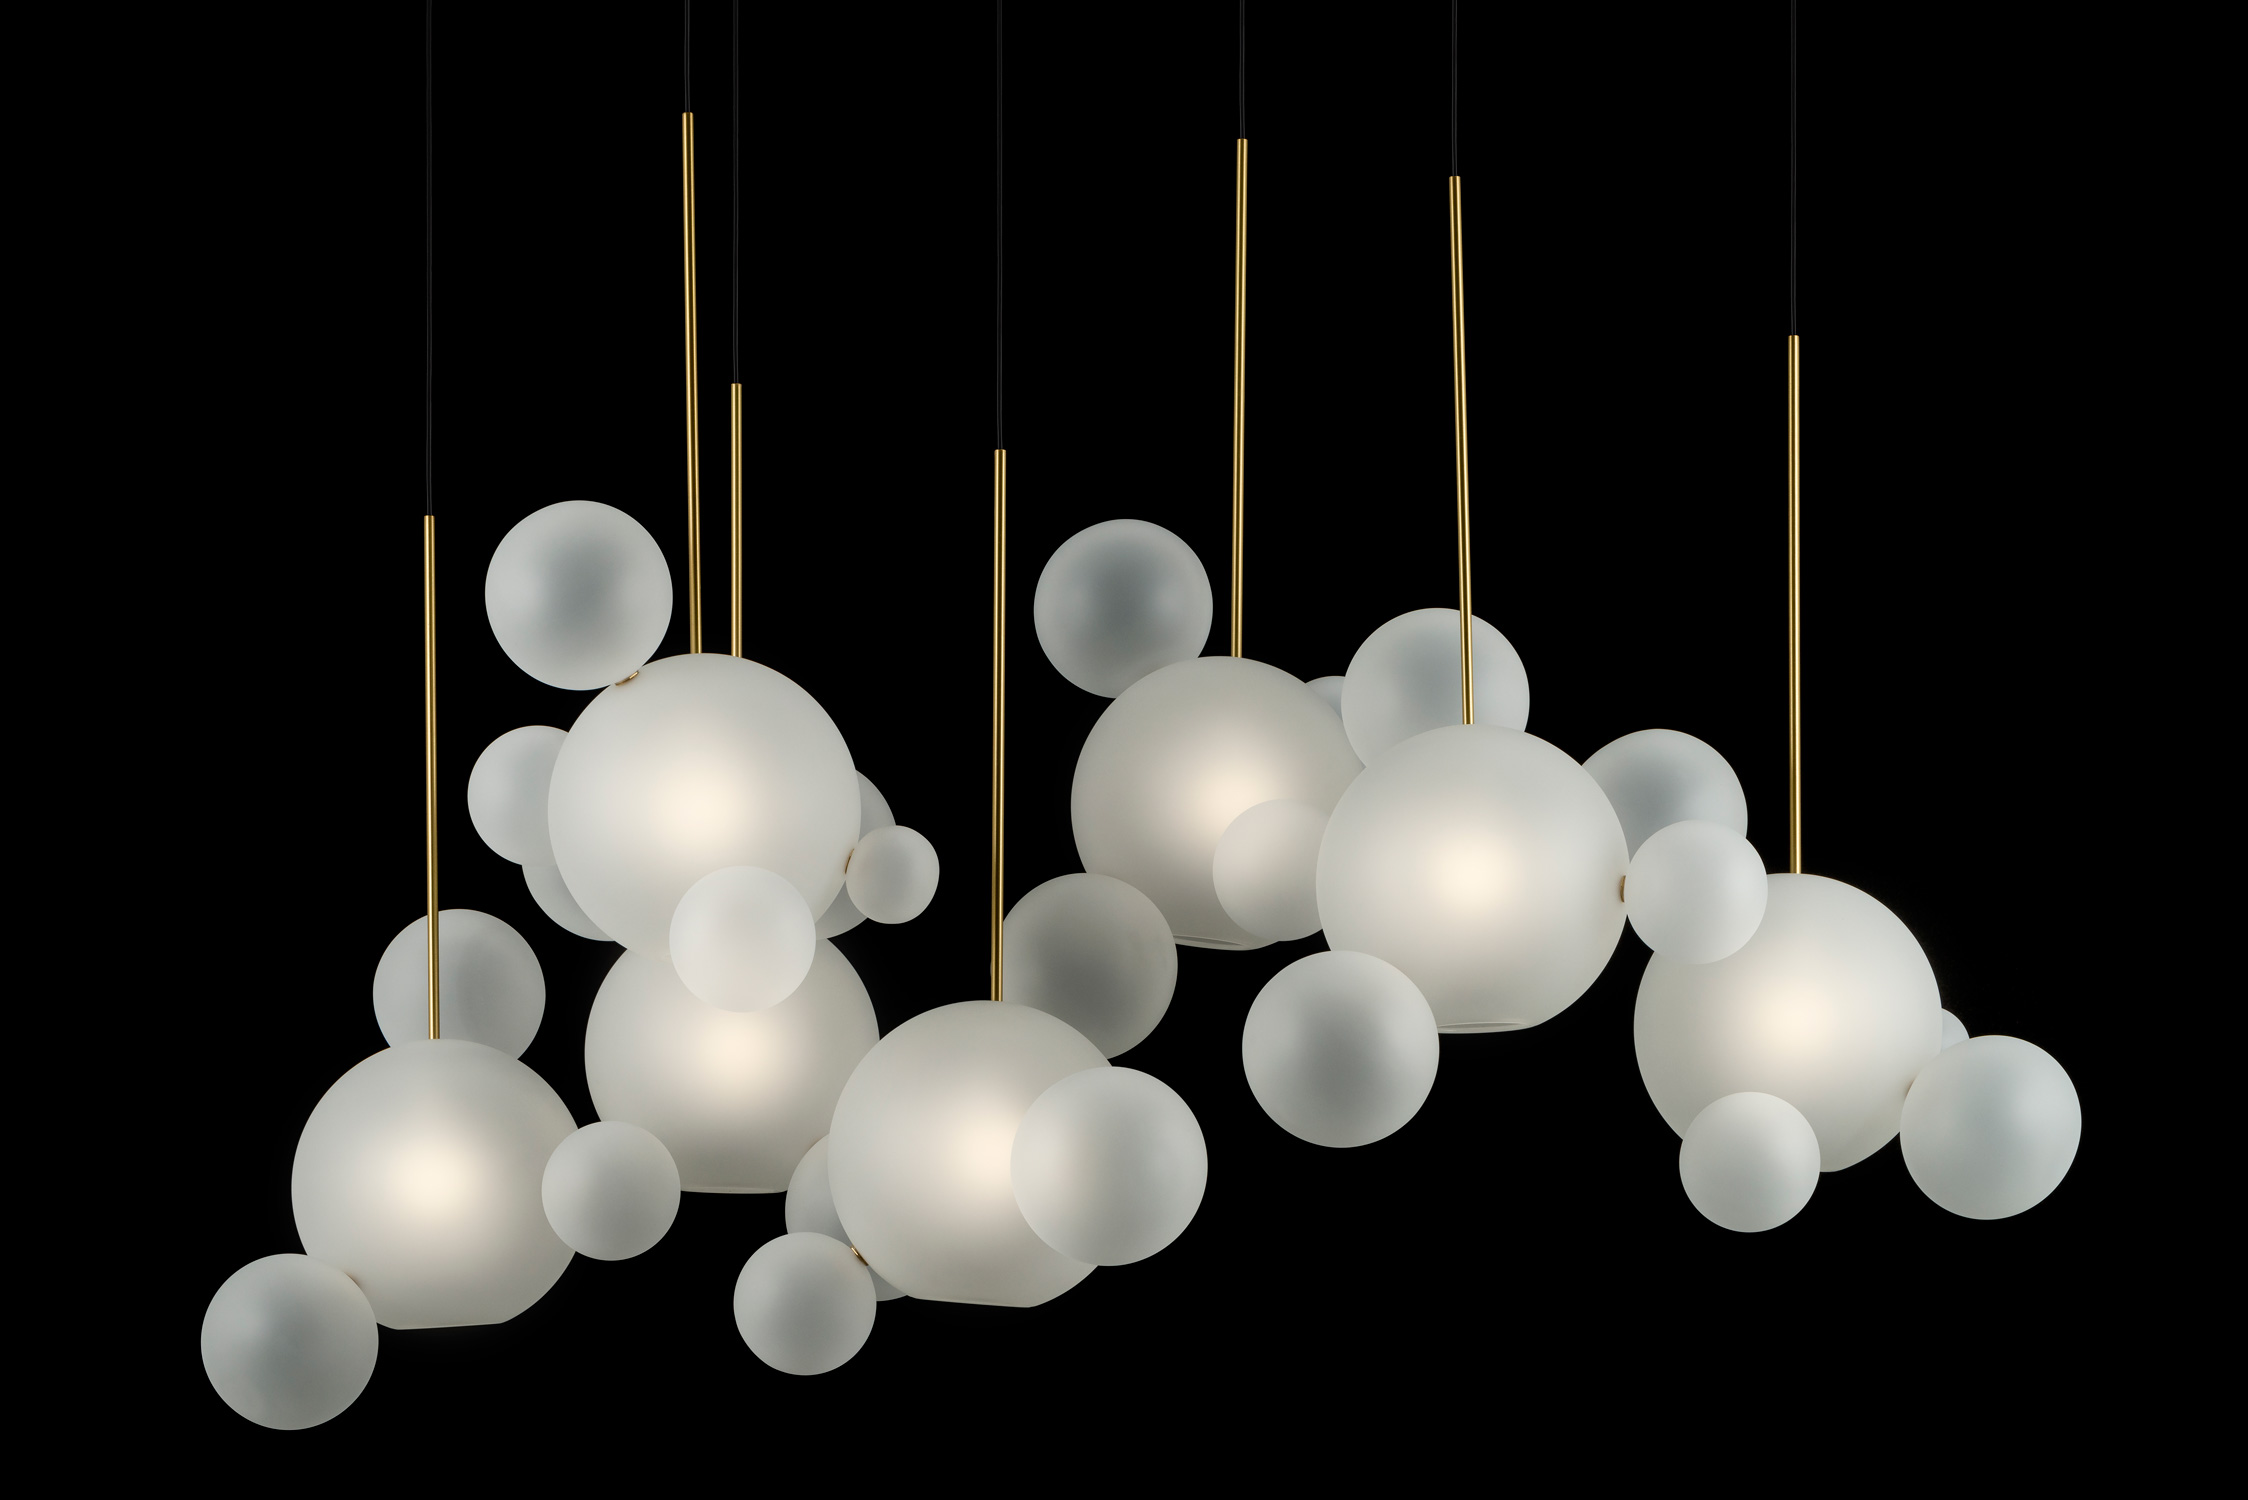 Giopato_Coombes_Bolle_Frosted_Zigzag_Chandelier_34_Bubbles_Ph_FedericoVilla.jpg